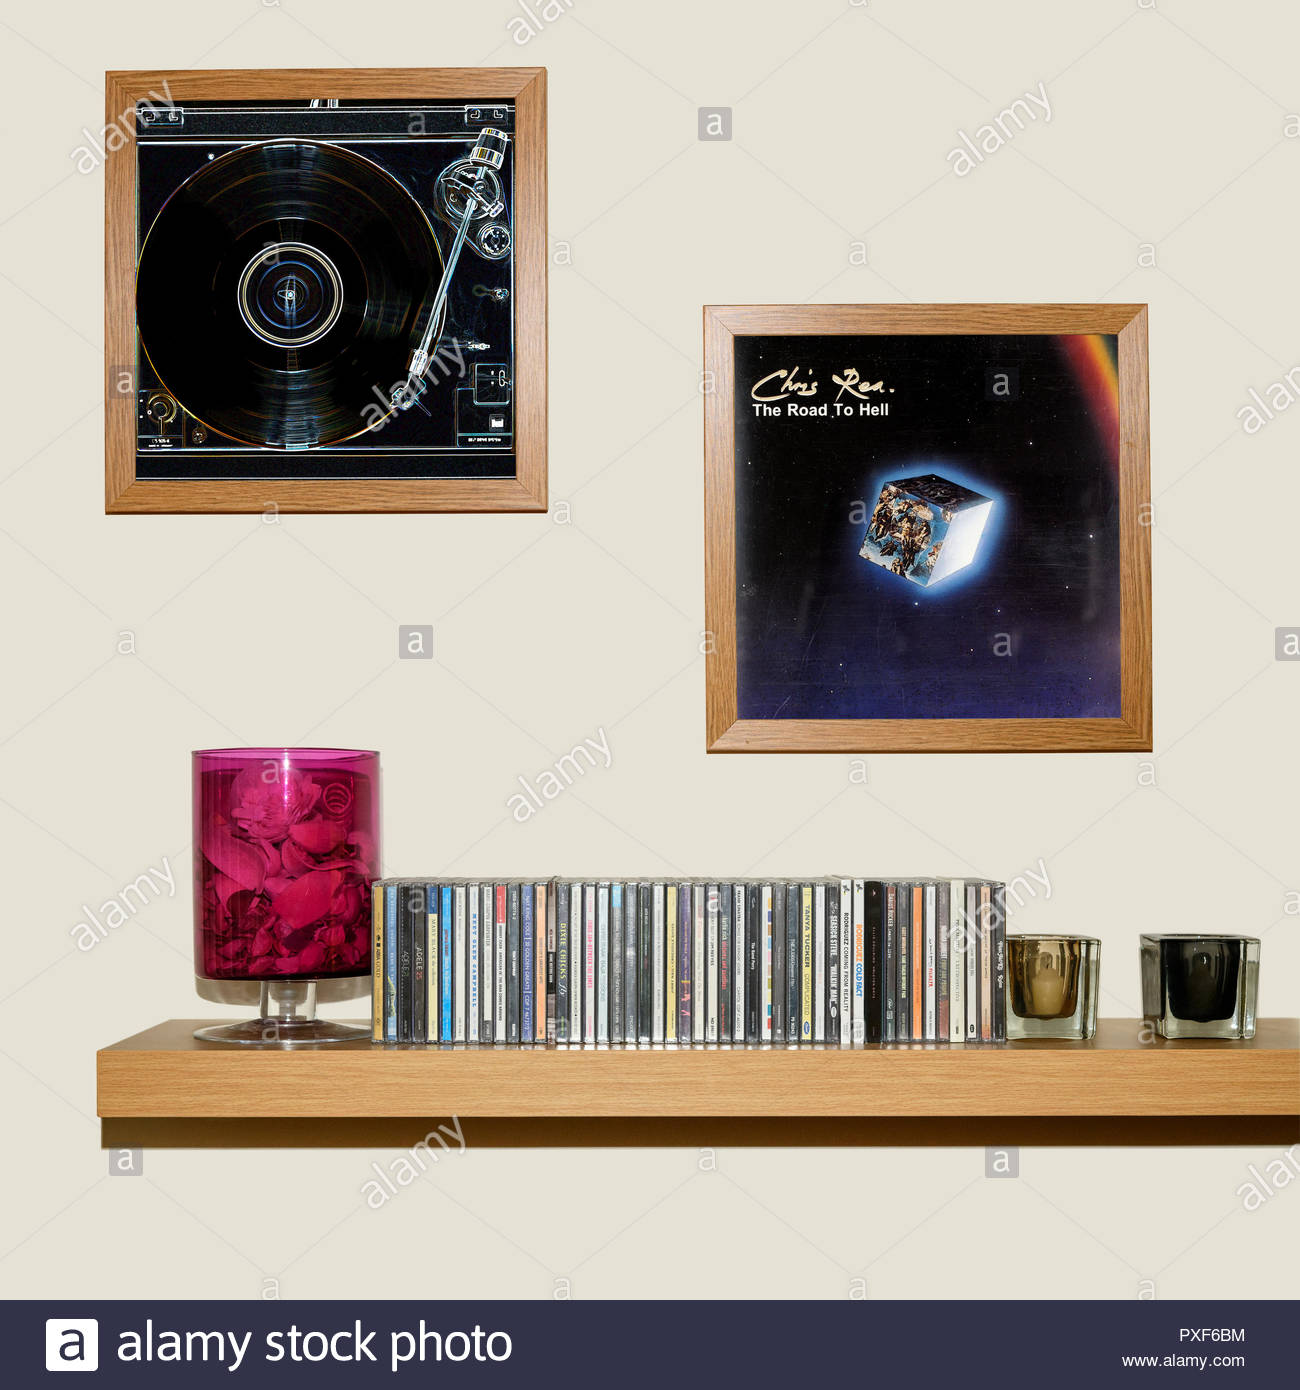 CD Collection and framed Chris Rea 1989 album The Road To Hell, England - Stock Image